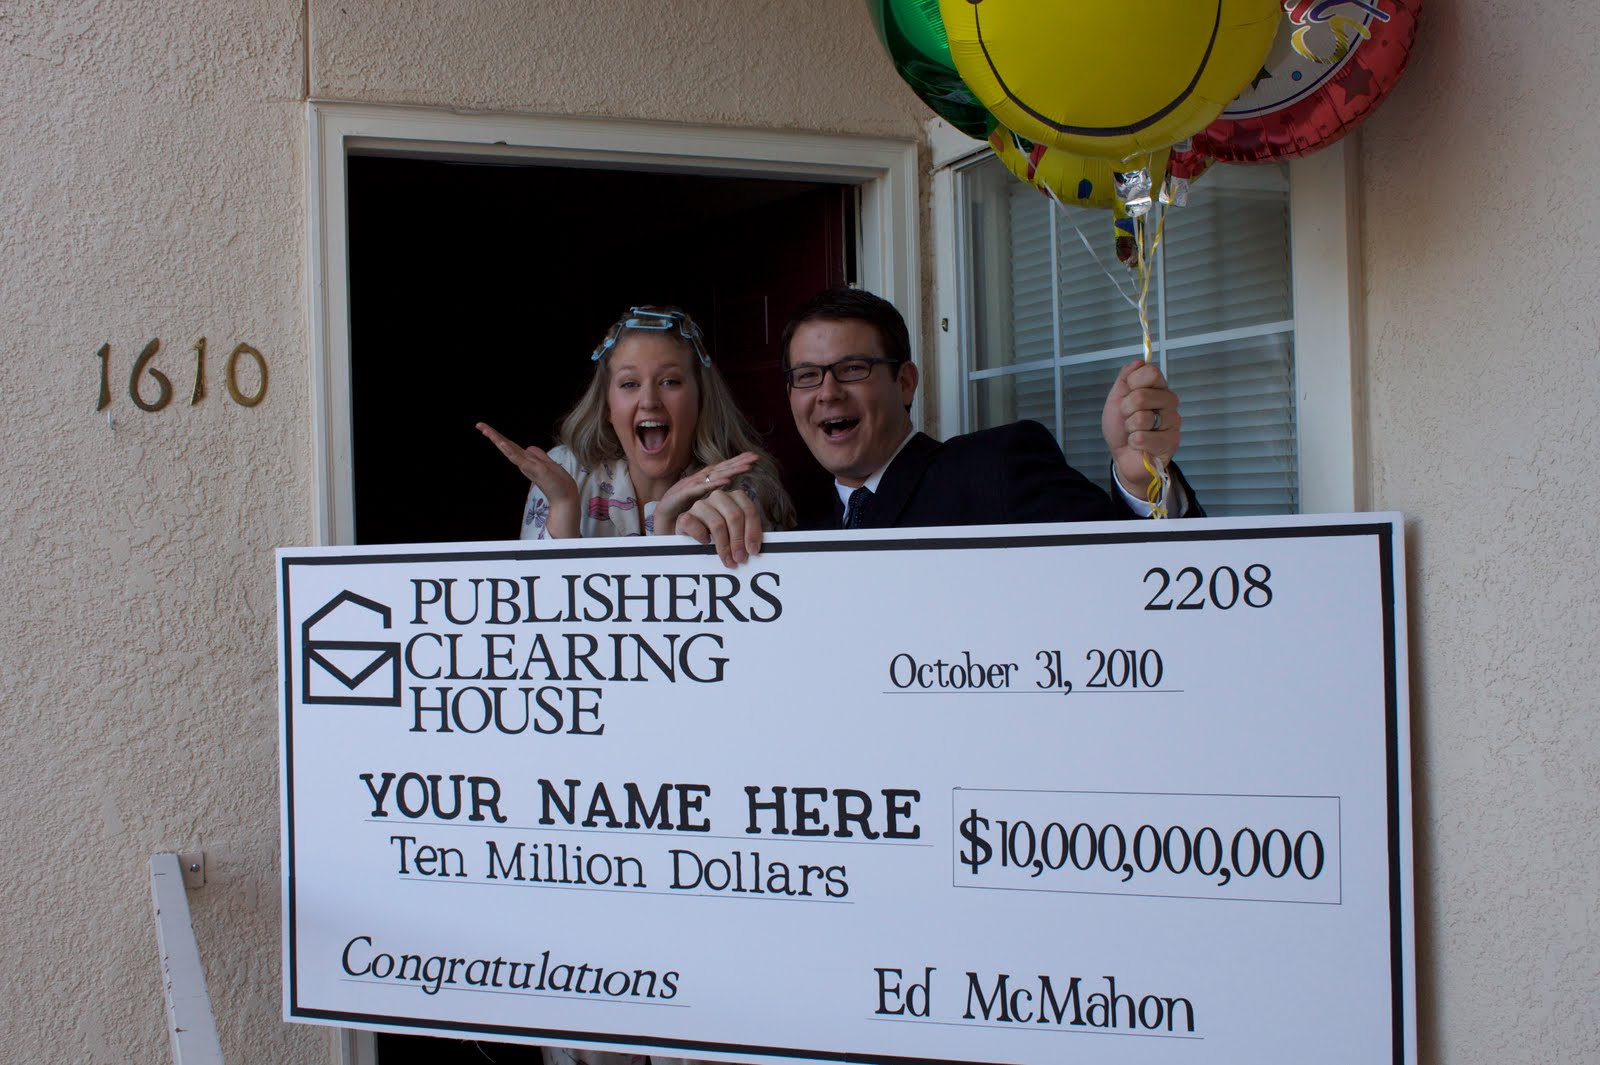 Publishers Clearing House Superprize Winners http://hastan.myblog.it/archive/2011/10/26/publishers-clearing-house-winners.html